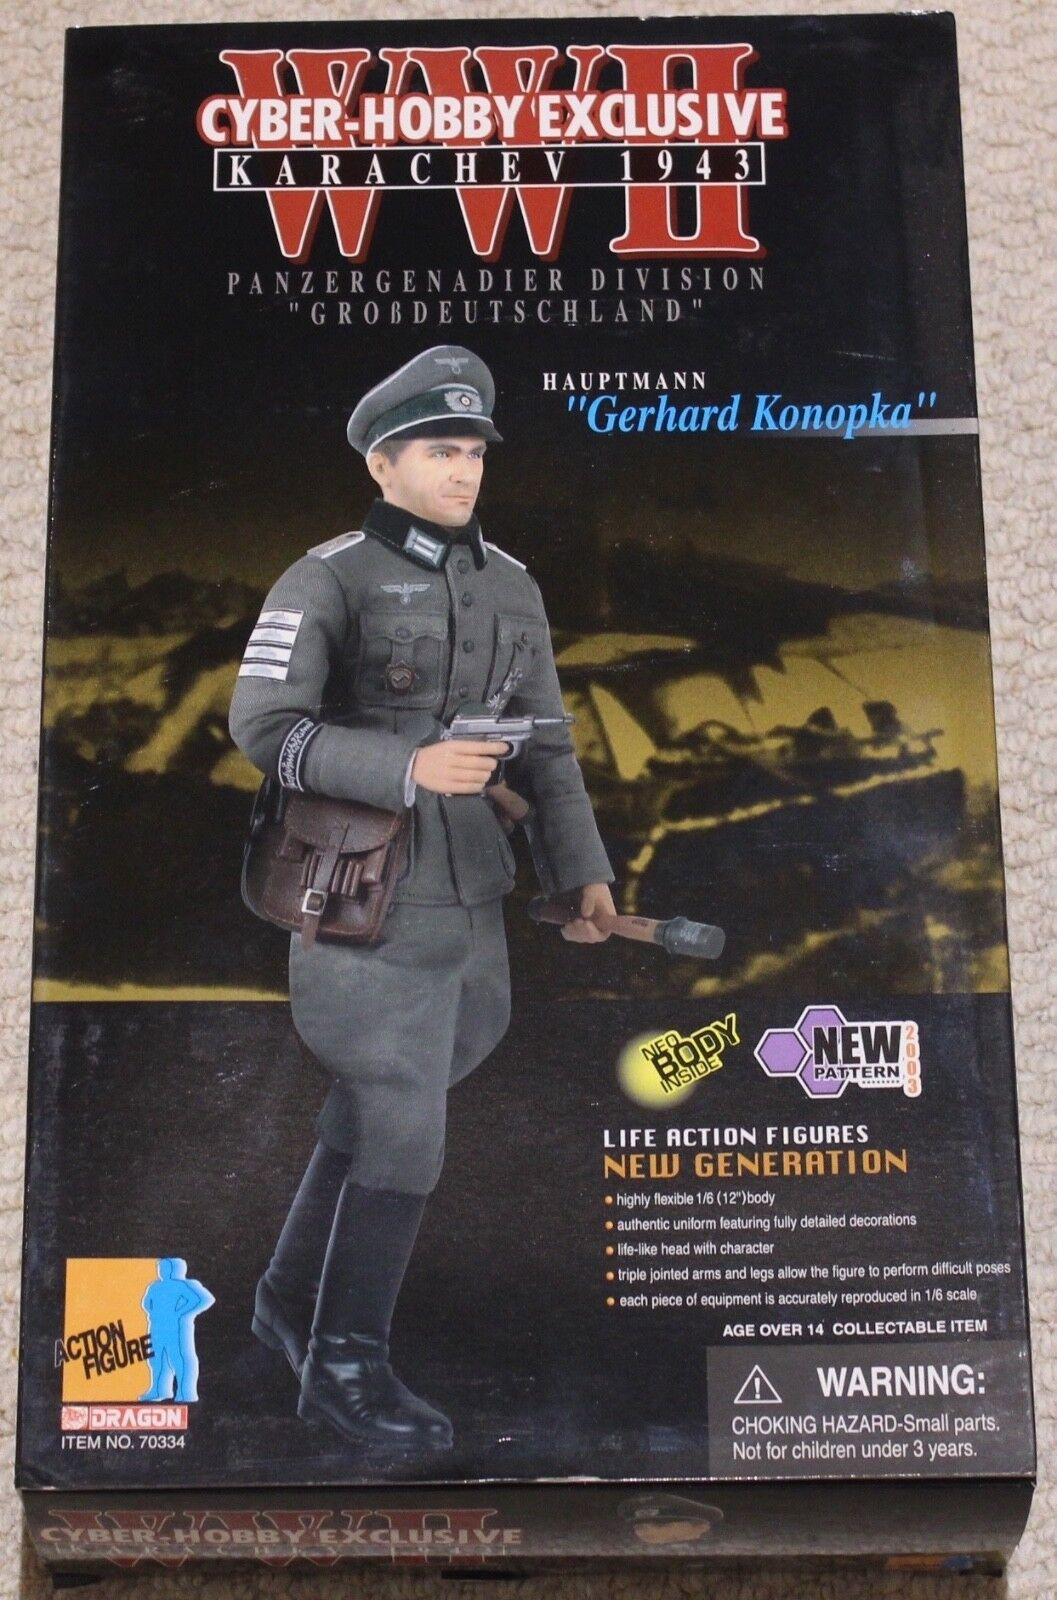 Dragon action figure 1 6 ww11 german konopka 12'' boxed did cyber hot toy